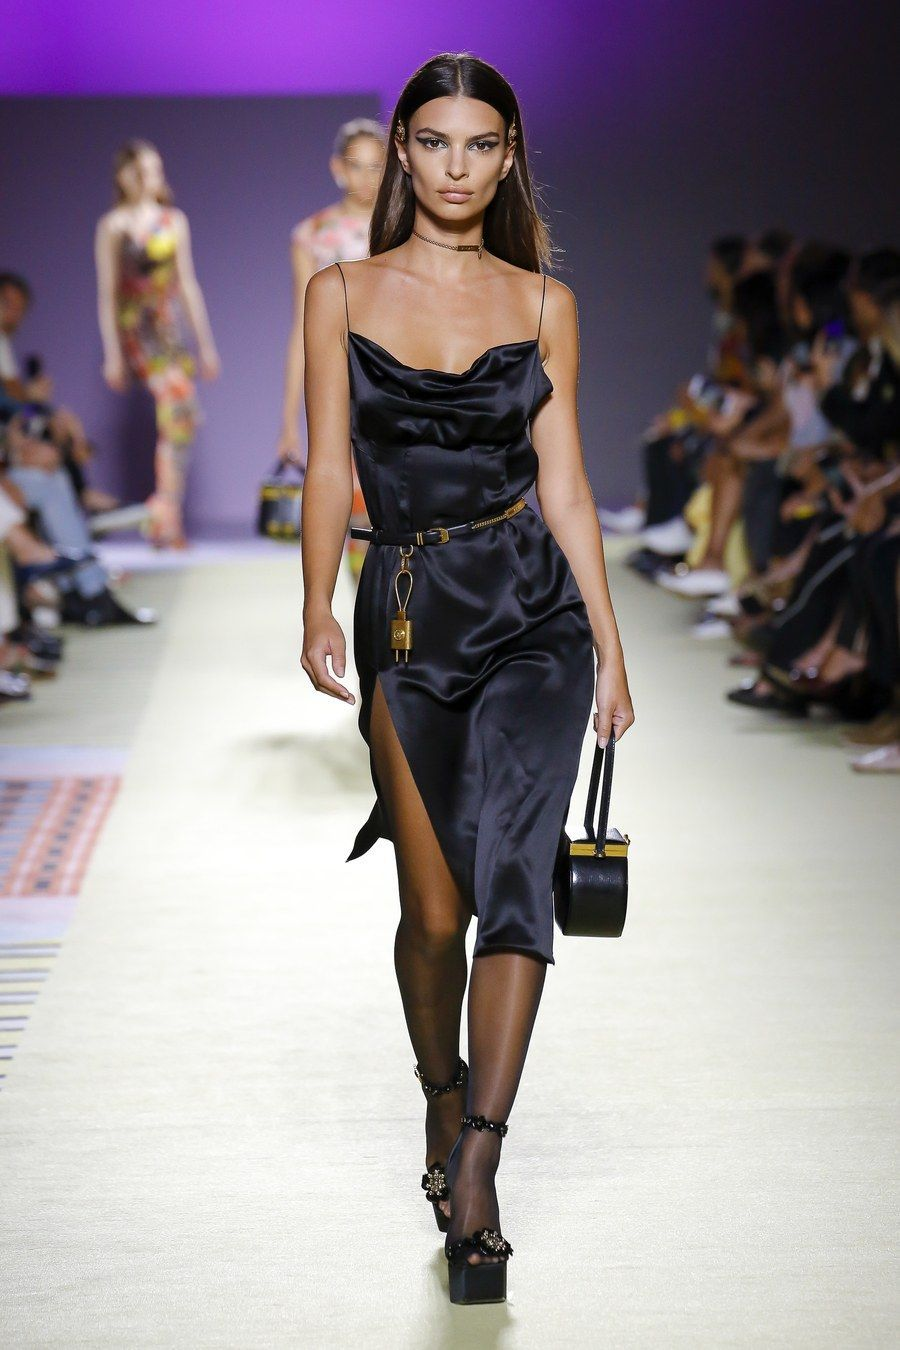 Versace Spring 2019 Ready-to-Wear Fashion Show #runwaydetails